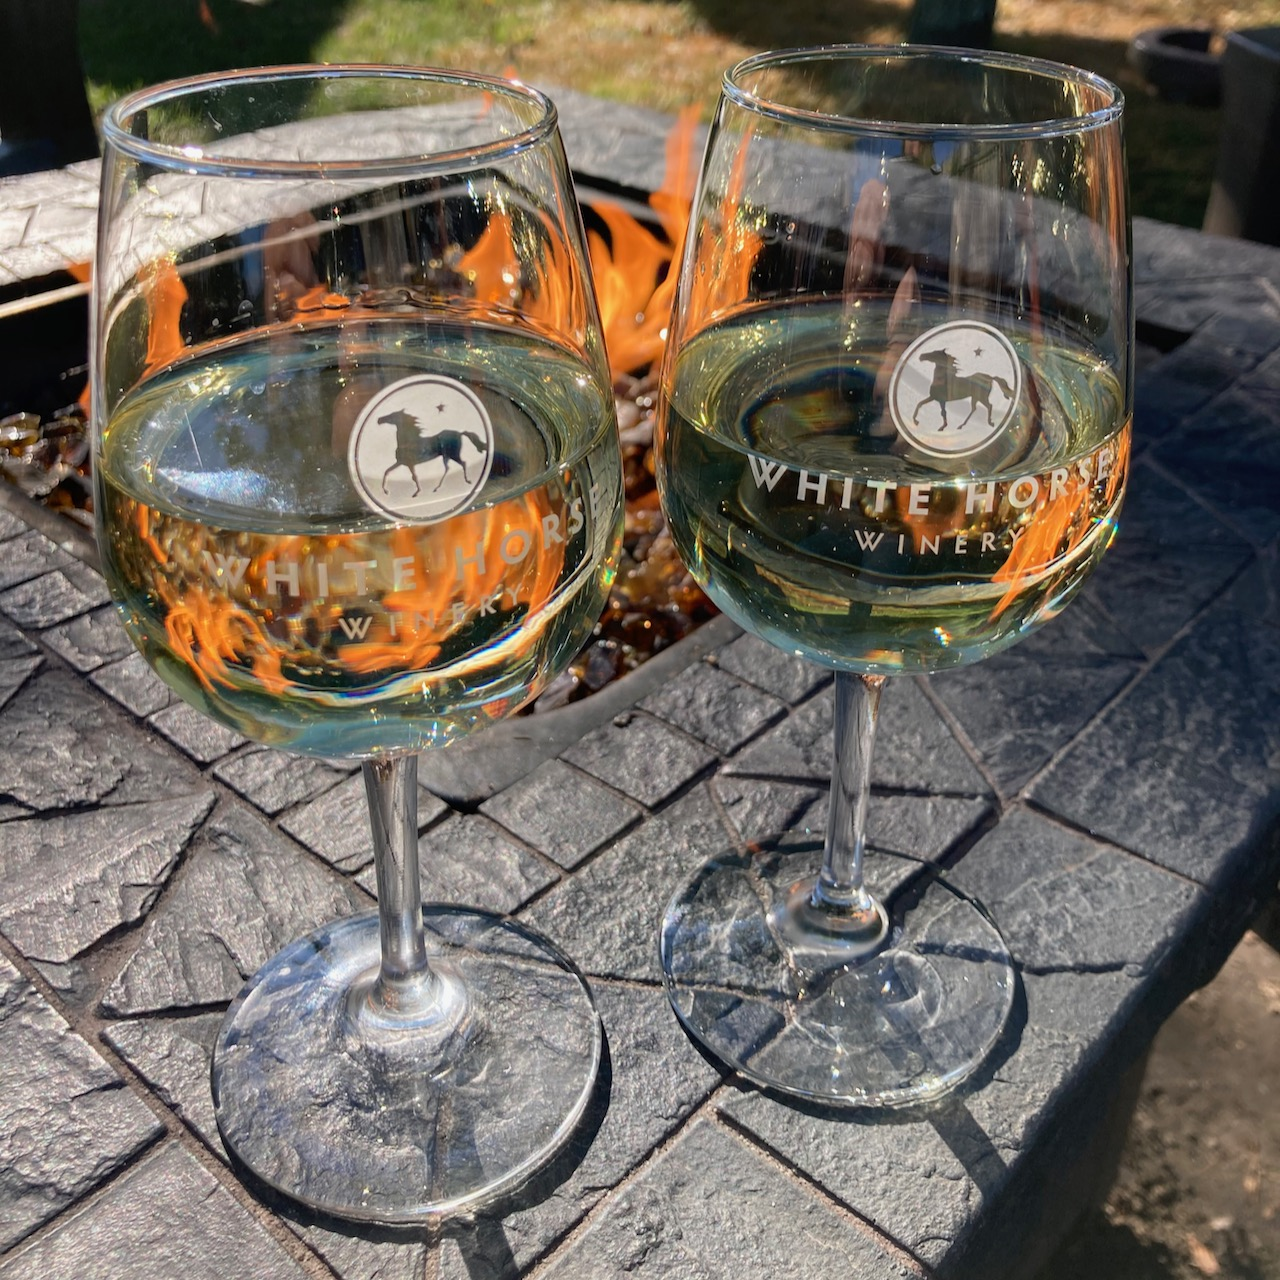 Two glasses of wine in front of fire pit.